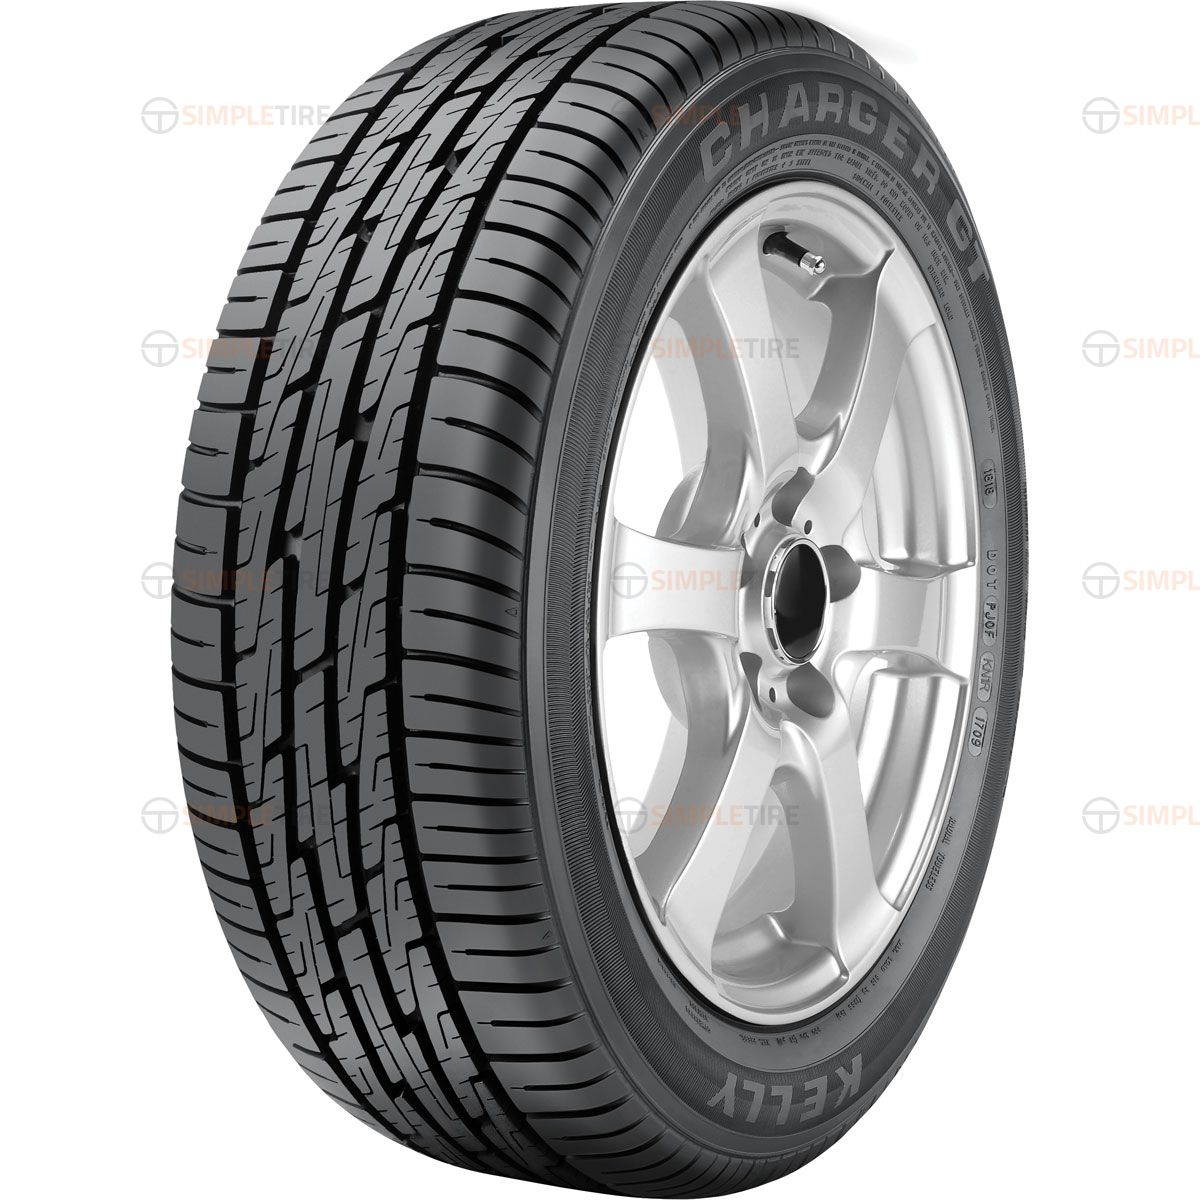 356500730 P195/60R15 Charger Kelly